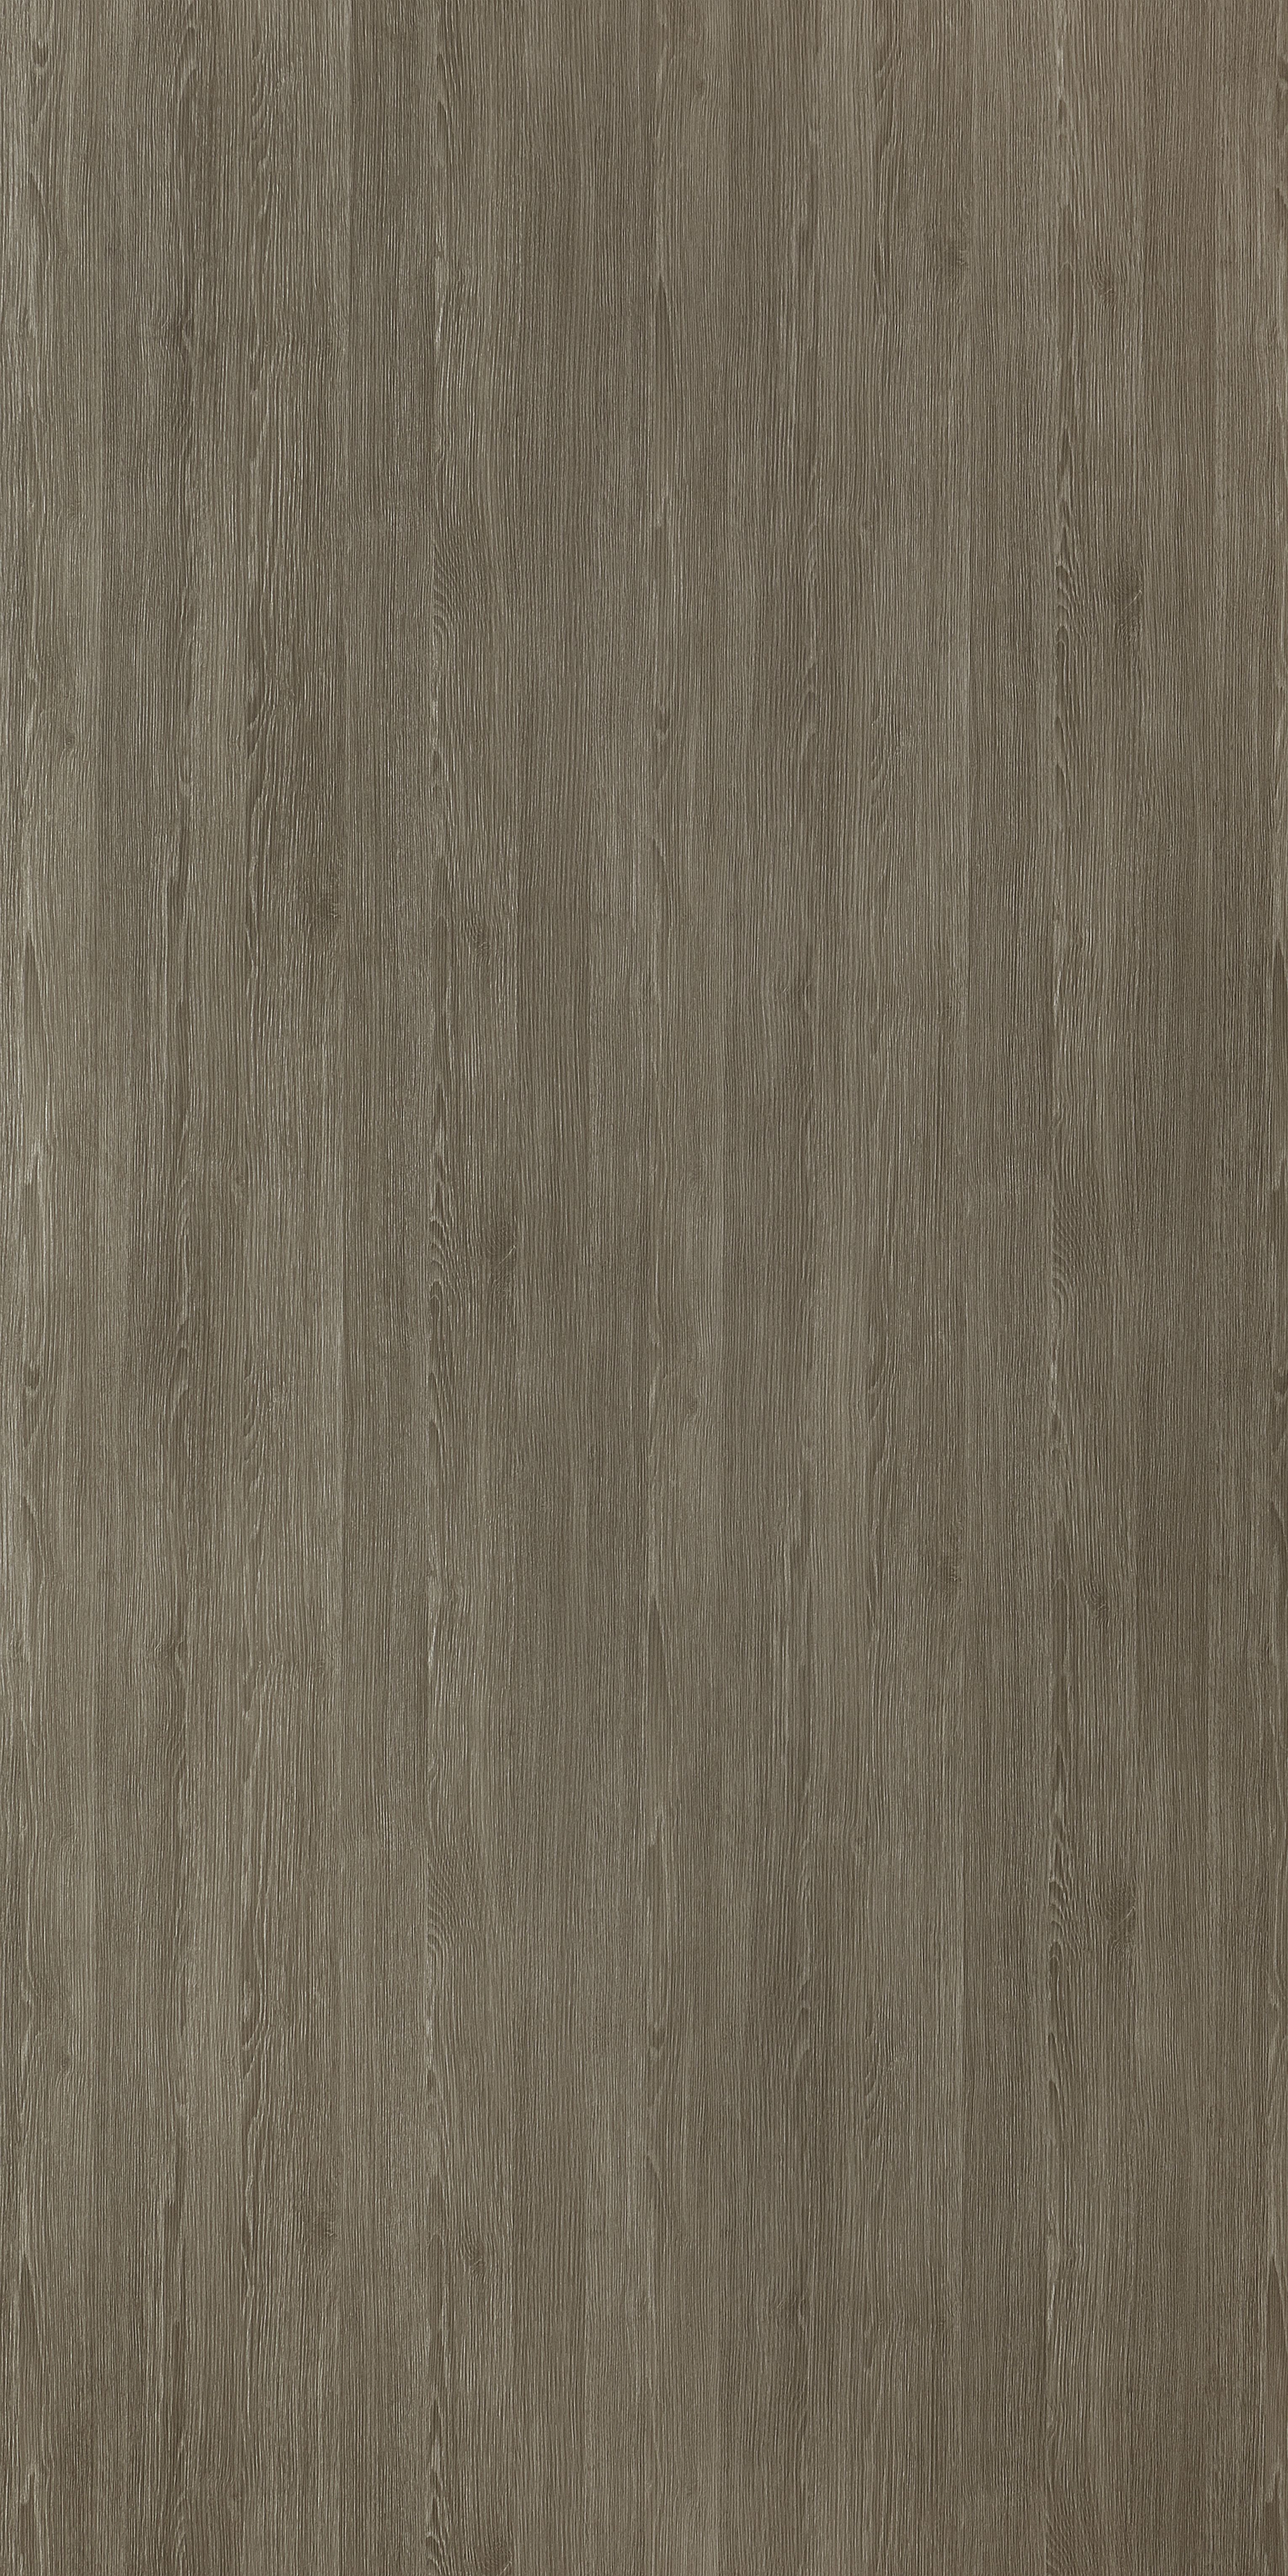 Edl rovere fumo materials pinterest woods wood for Texture rovere